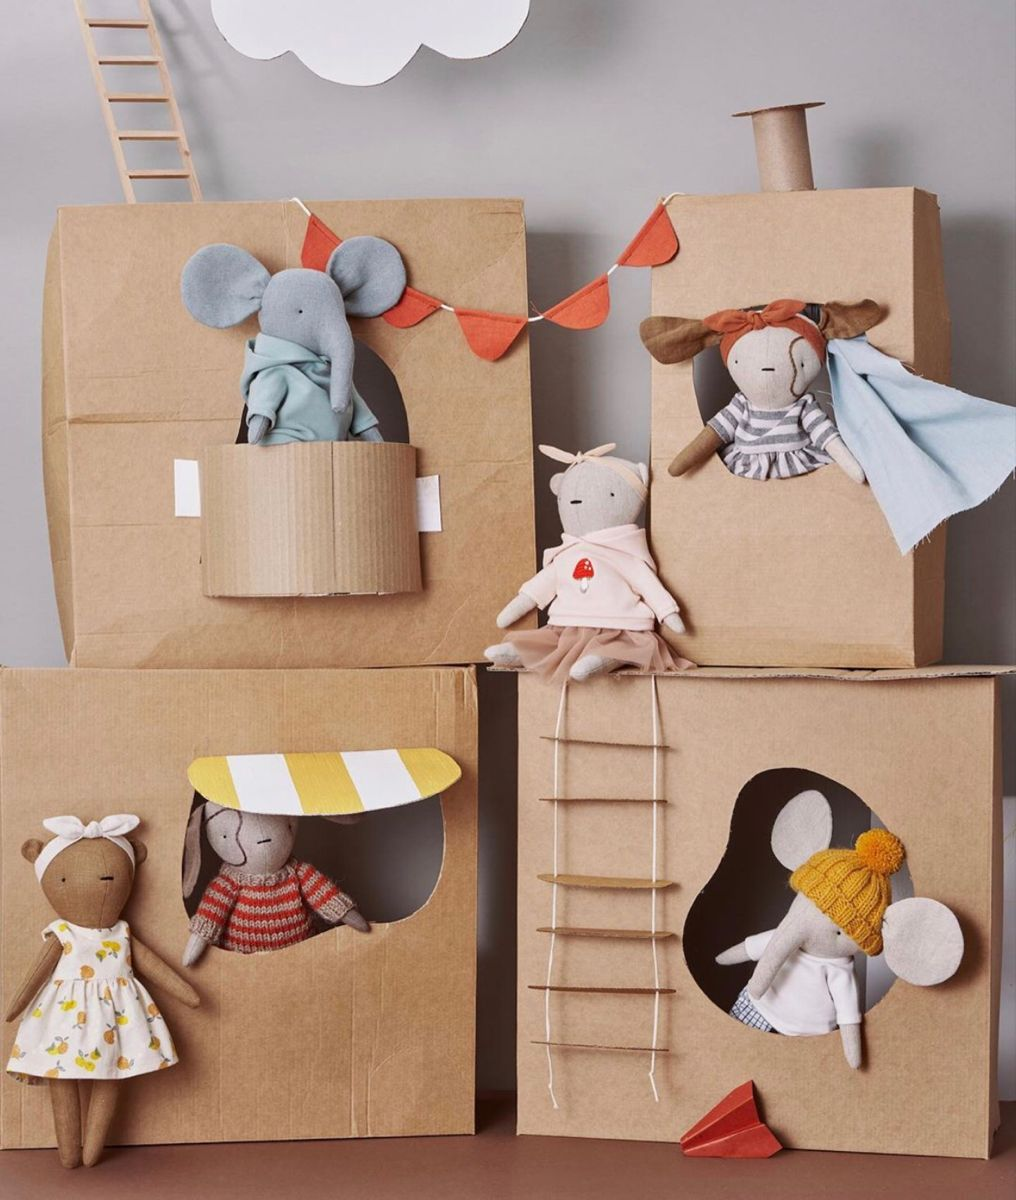 Pin By Just Lovely Life On P L A Y Kids Toys Cardboard Toys Diy For Kids